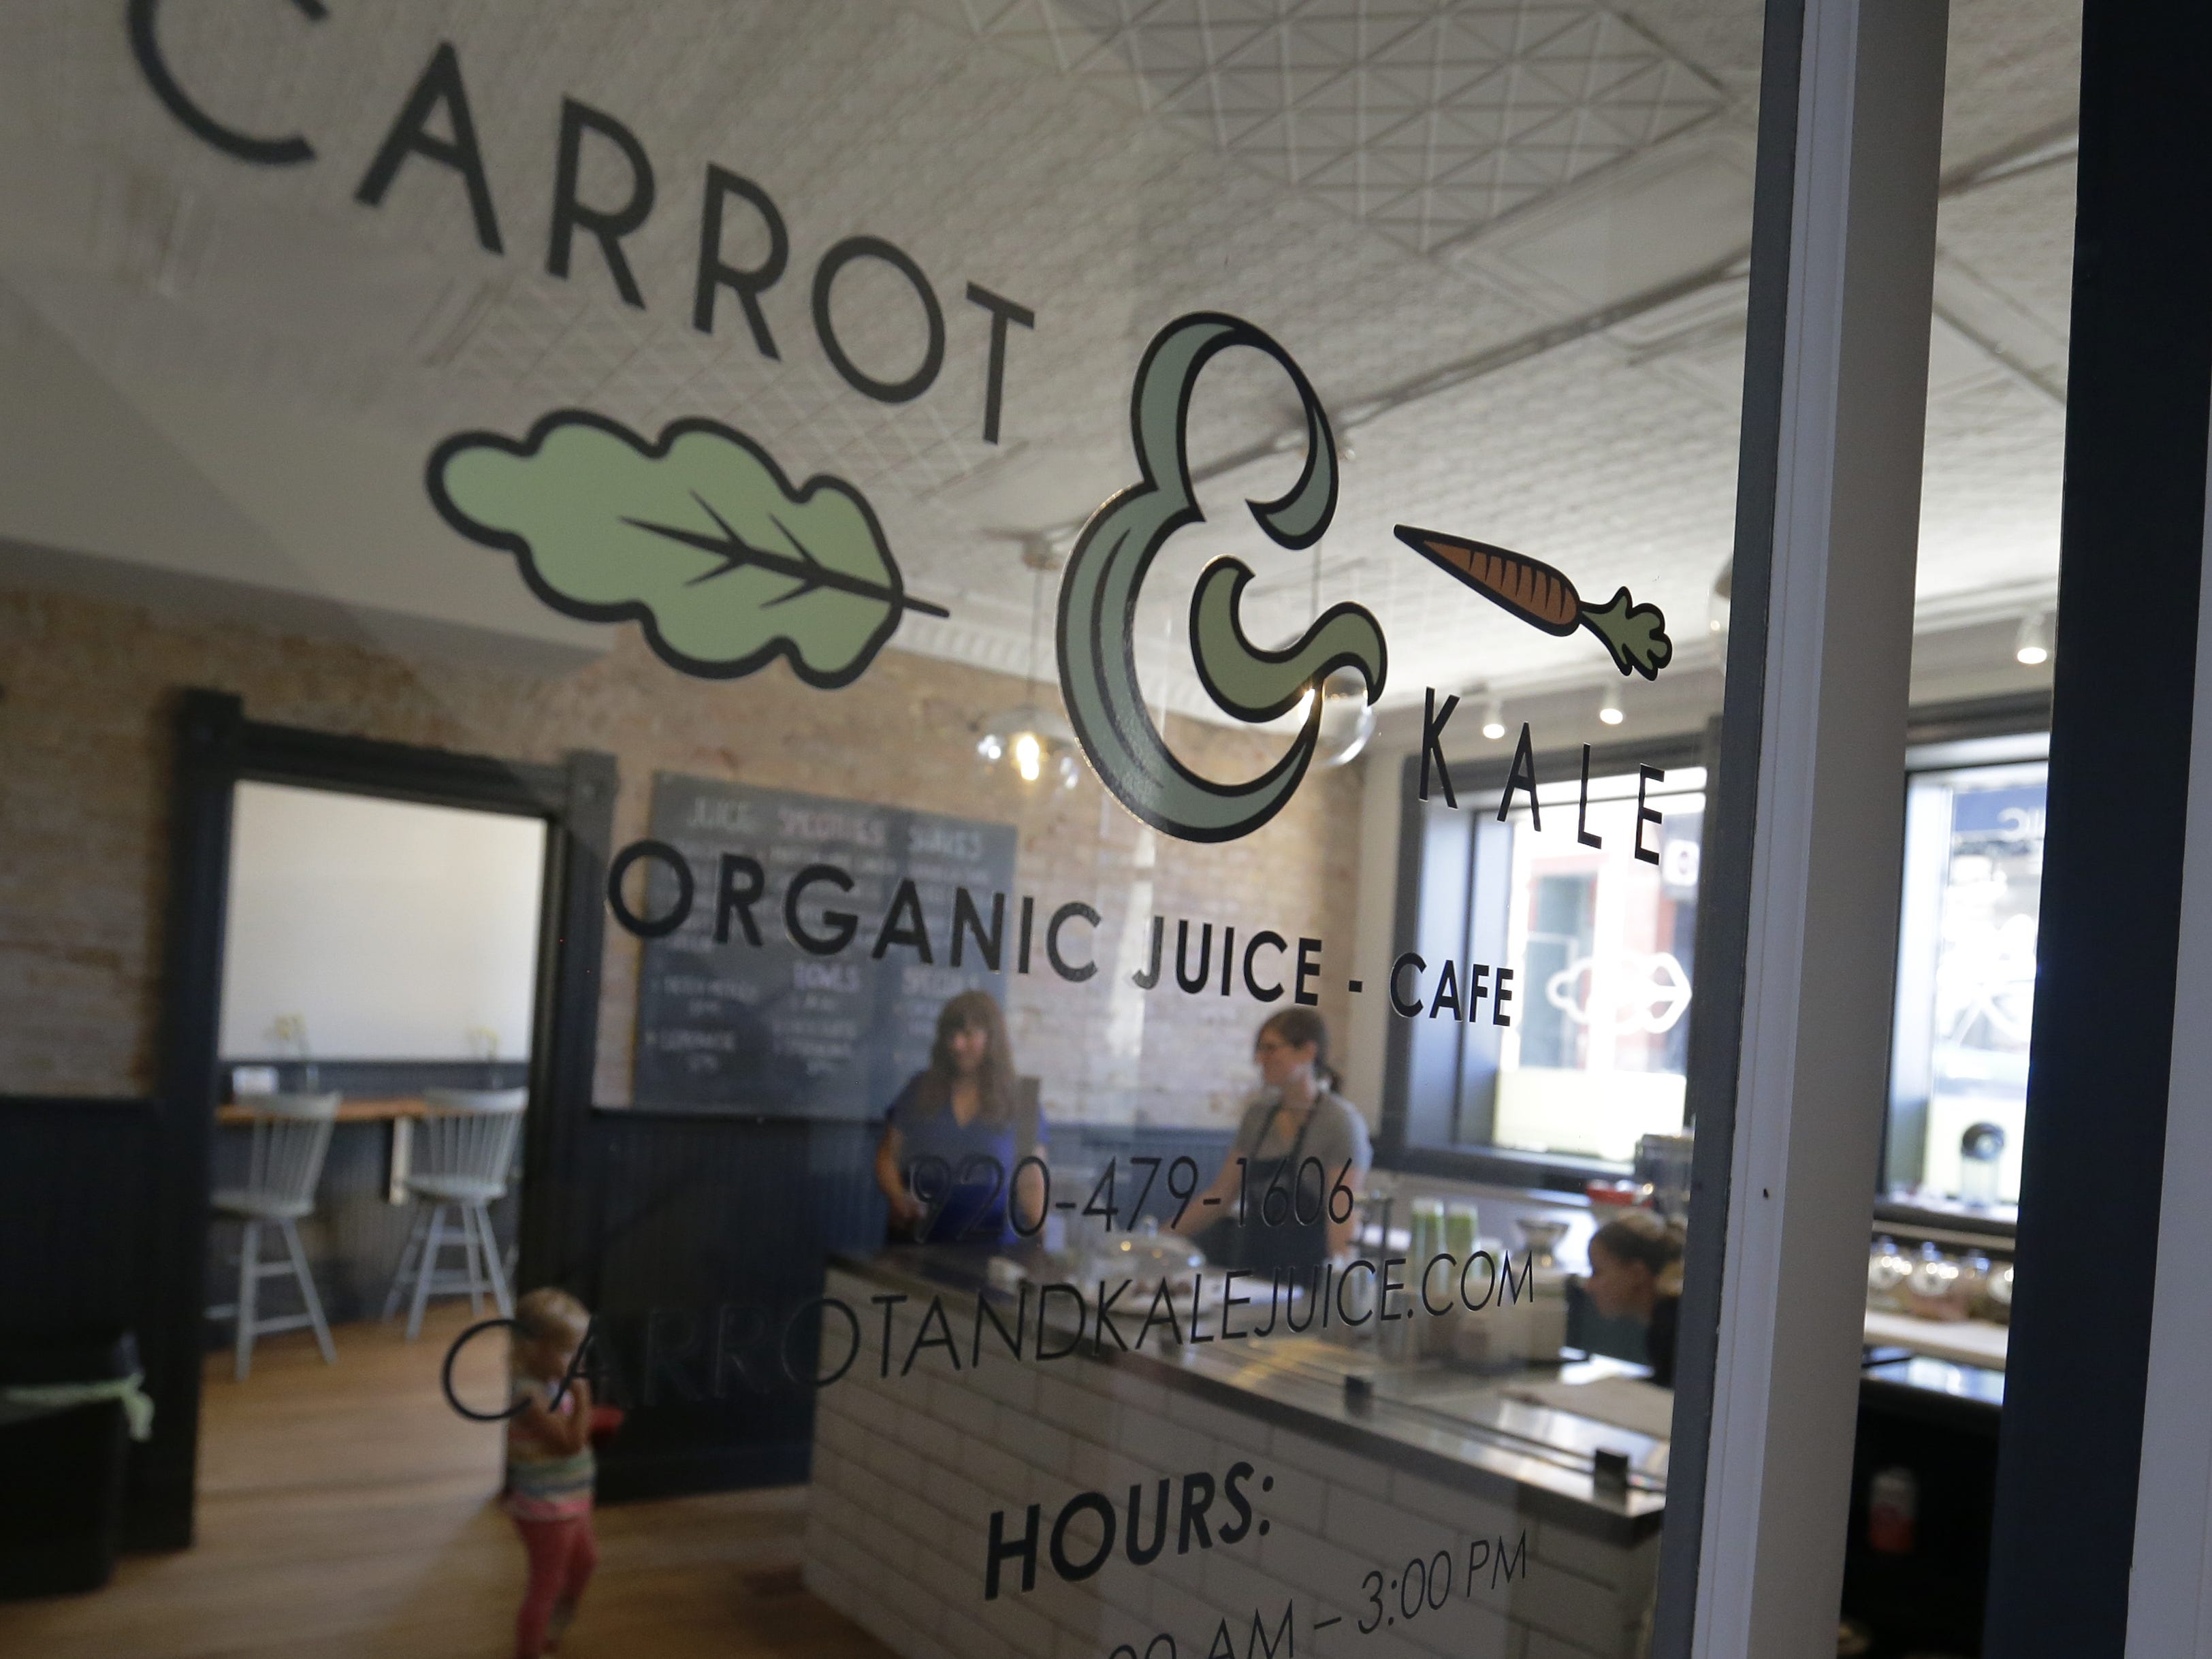 Carrot & Kale, an organic juice bar and cafe at 110 Algoma Blvd., Oshkosh, offers healthy food and drink options Tuesday, Sept. 11, 2018.